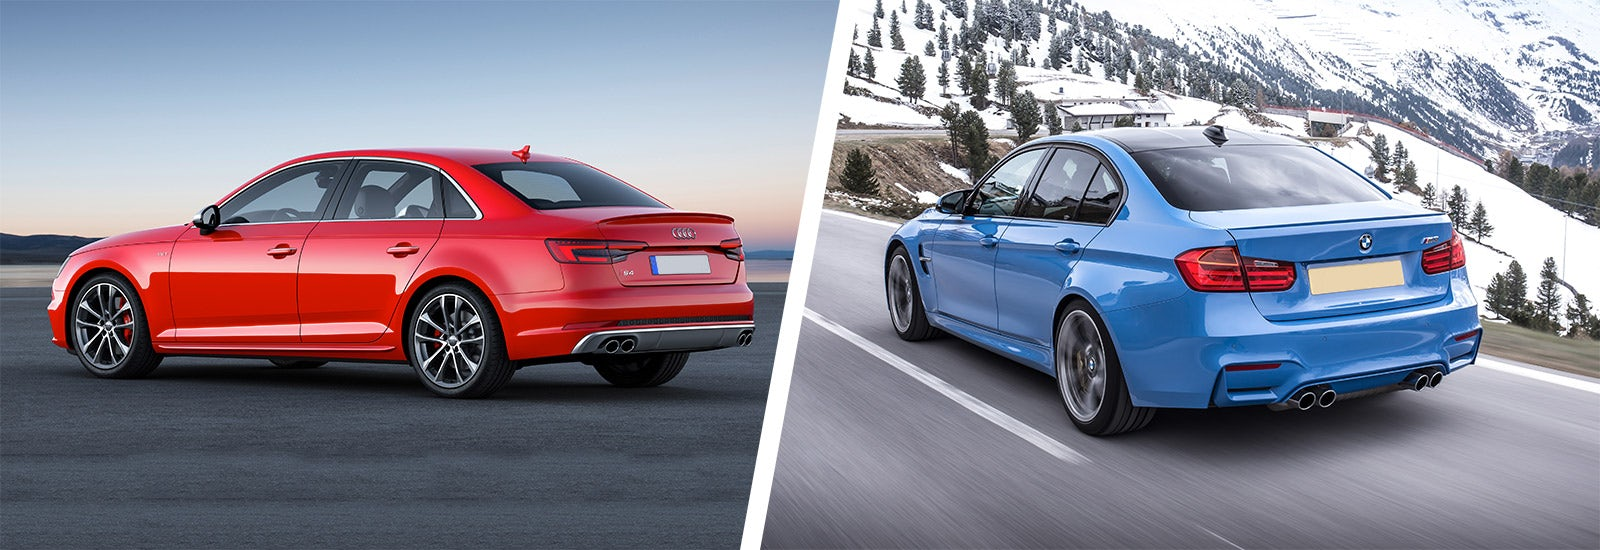 Audi S Vs BMW M Carwow - Audi vs bmw